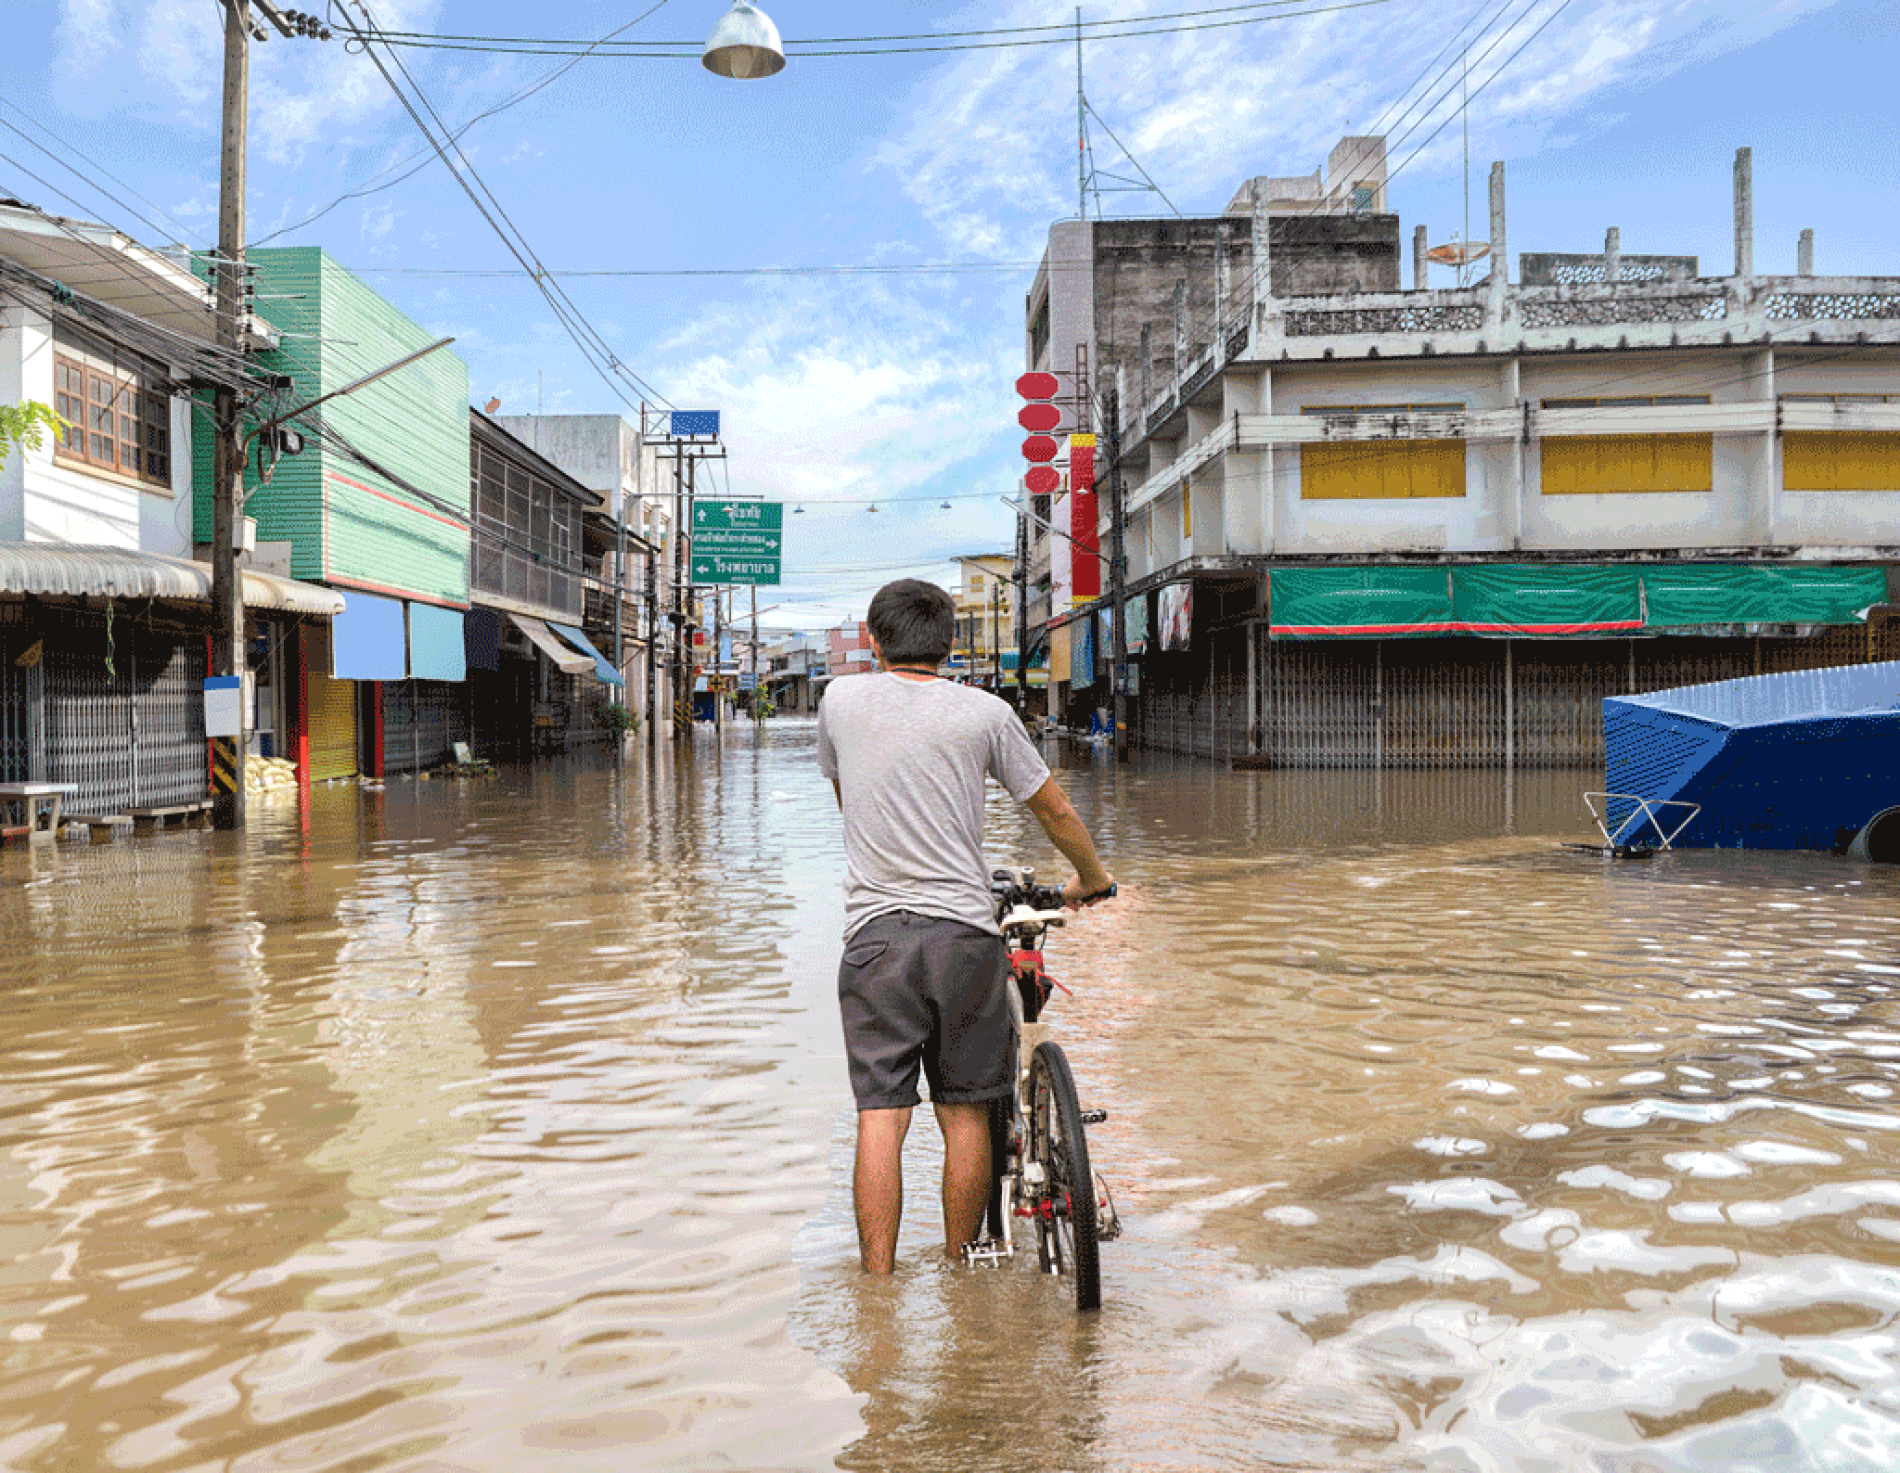 Man walking with a bike through a flooded street